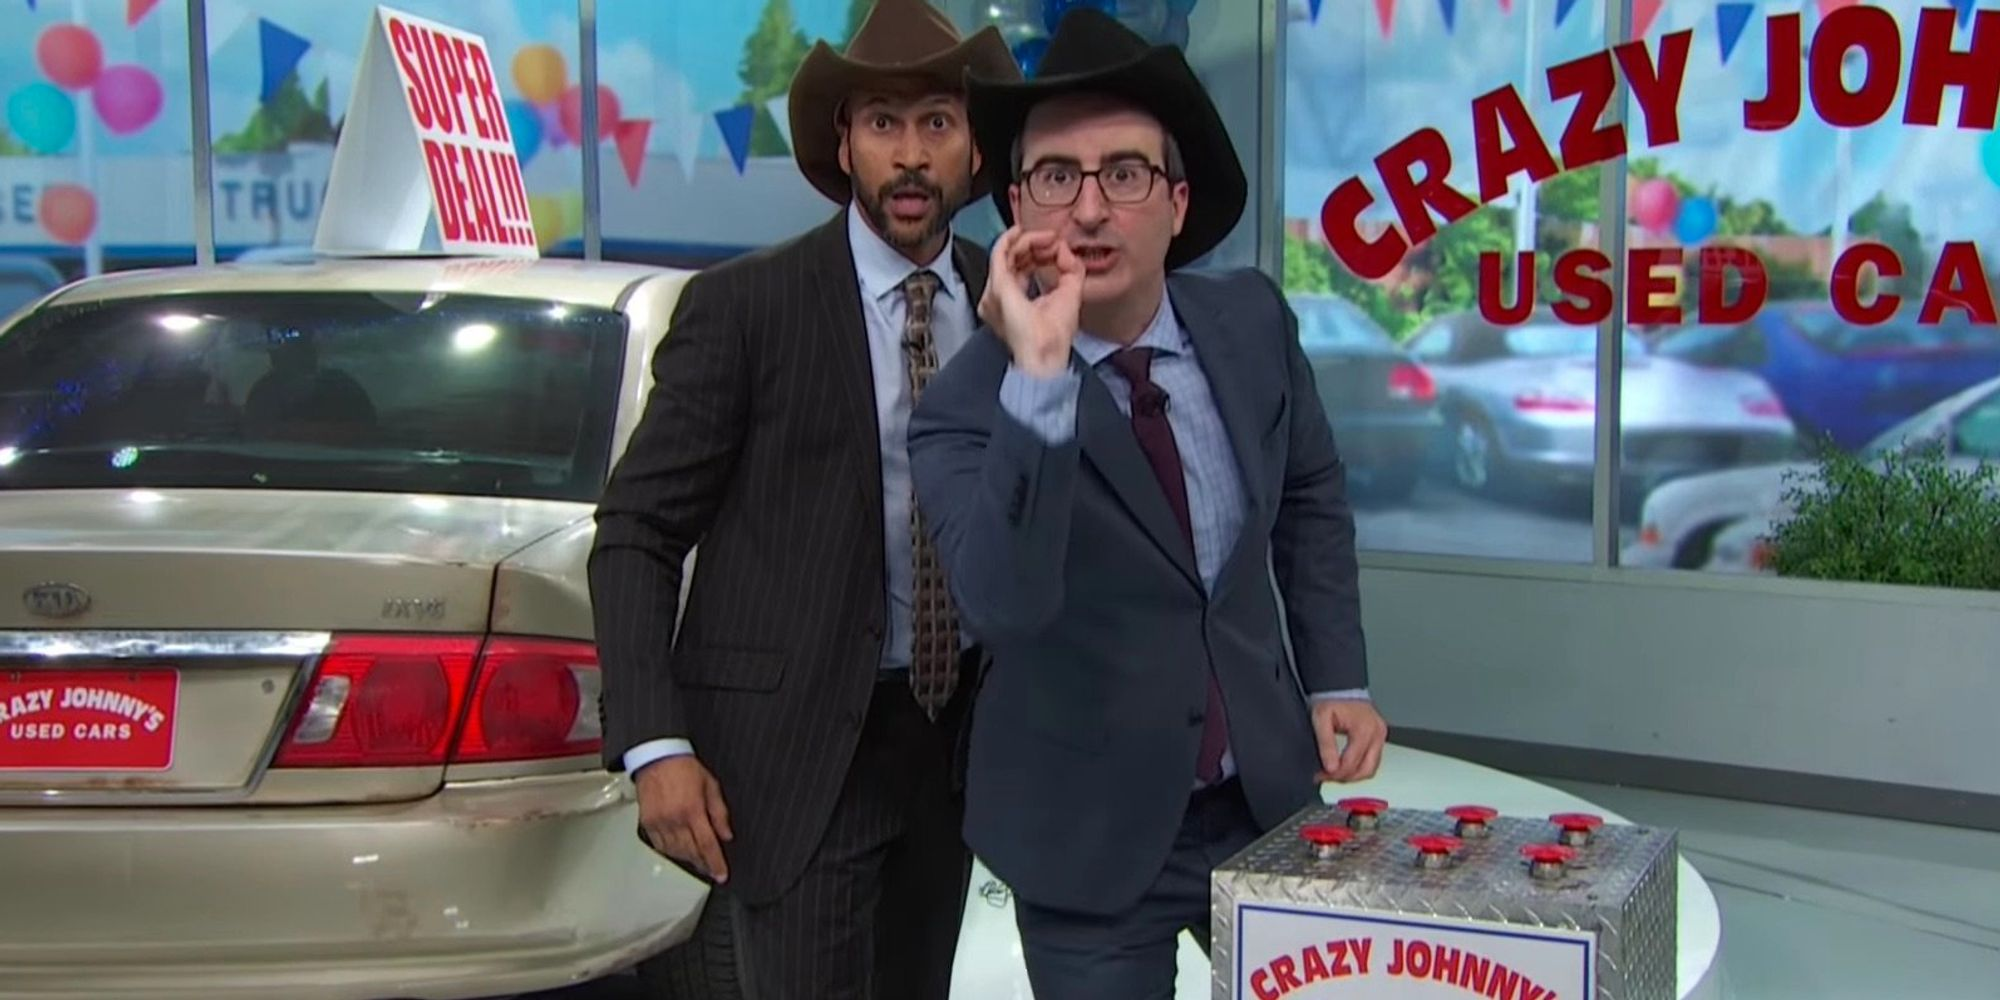 Buying A Used Car? John Oliver Has The Ugly Truth About